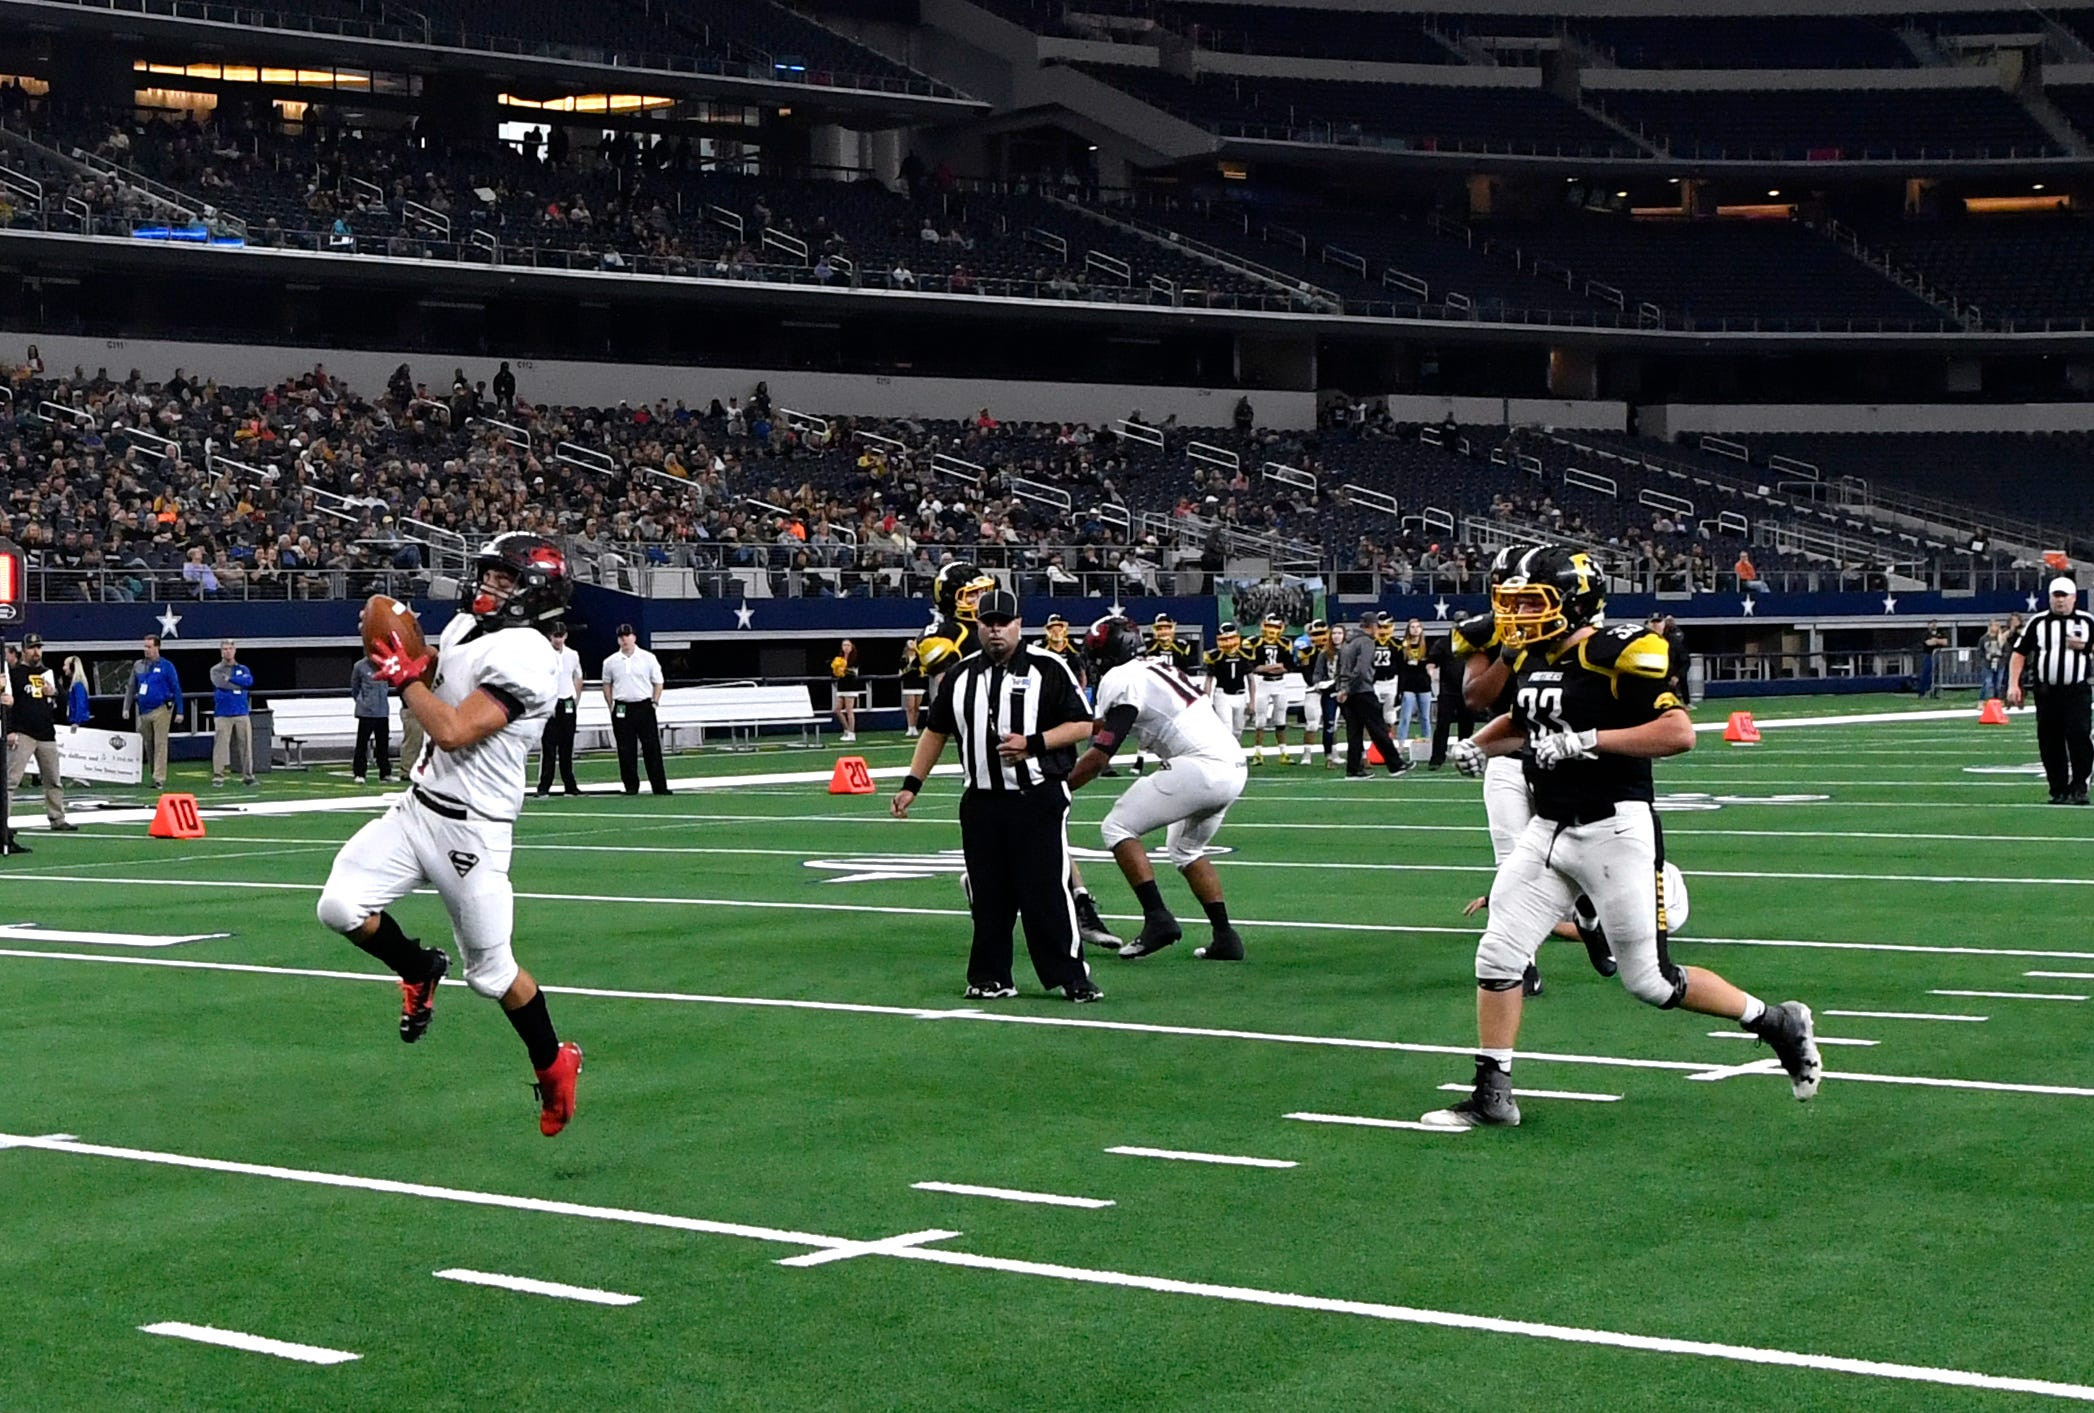 Strawn running back Carlos Villanueva scores a touchdown against the Follett Panthers during Wednesday's six-man Class 1A Division II state title game at AT&T Stadium.